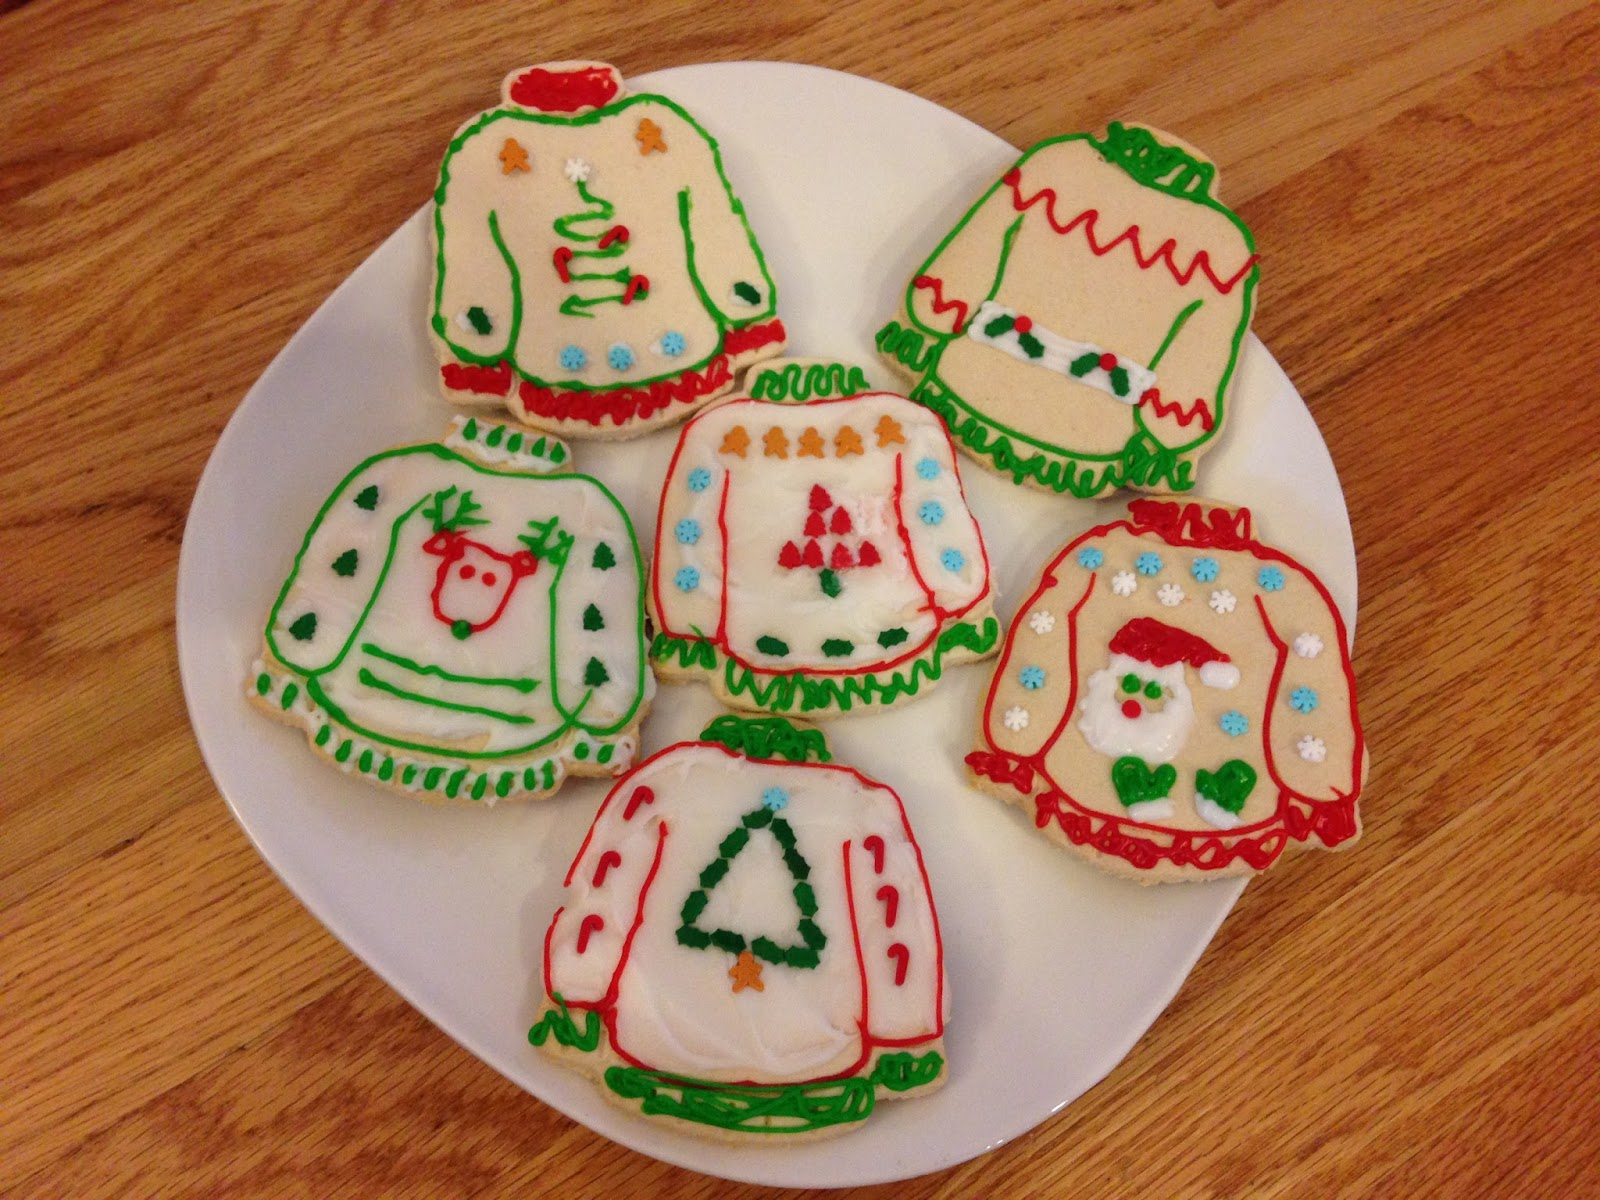 this would be a fun project to make with kids because its all about decorating the cookies and eating the candies